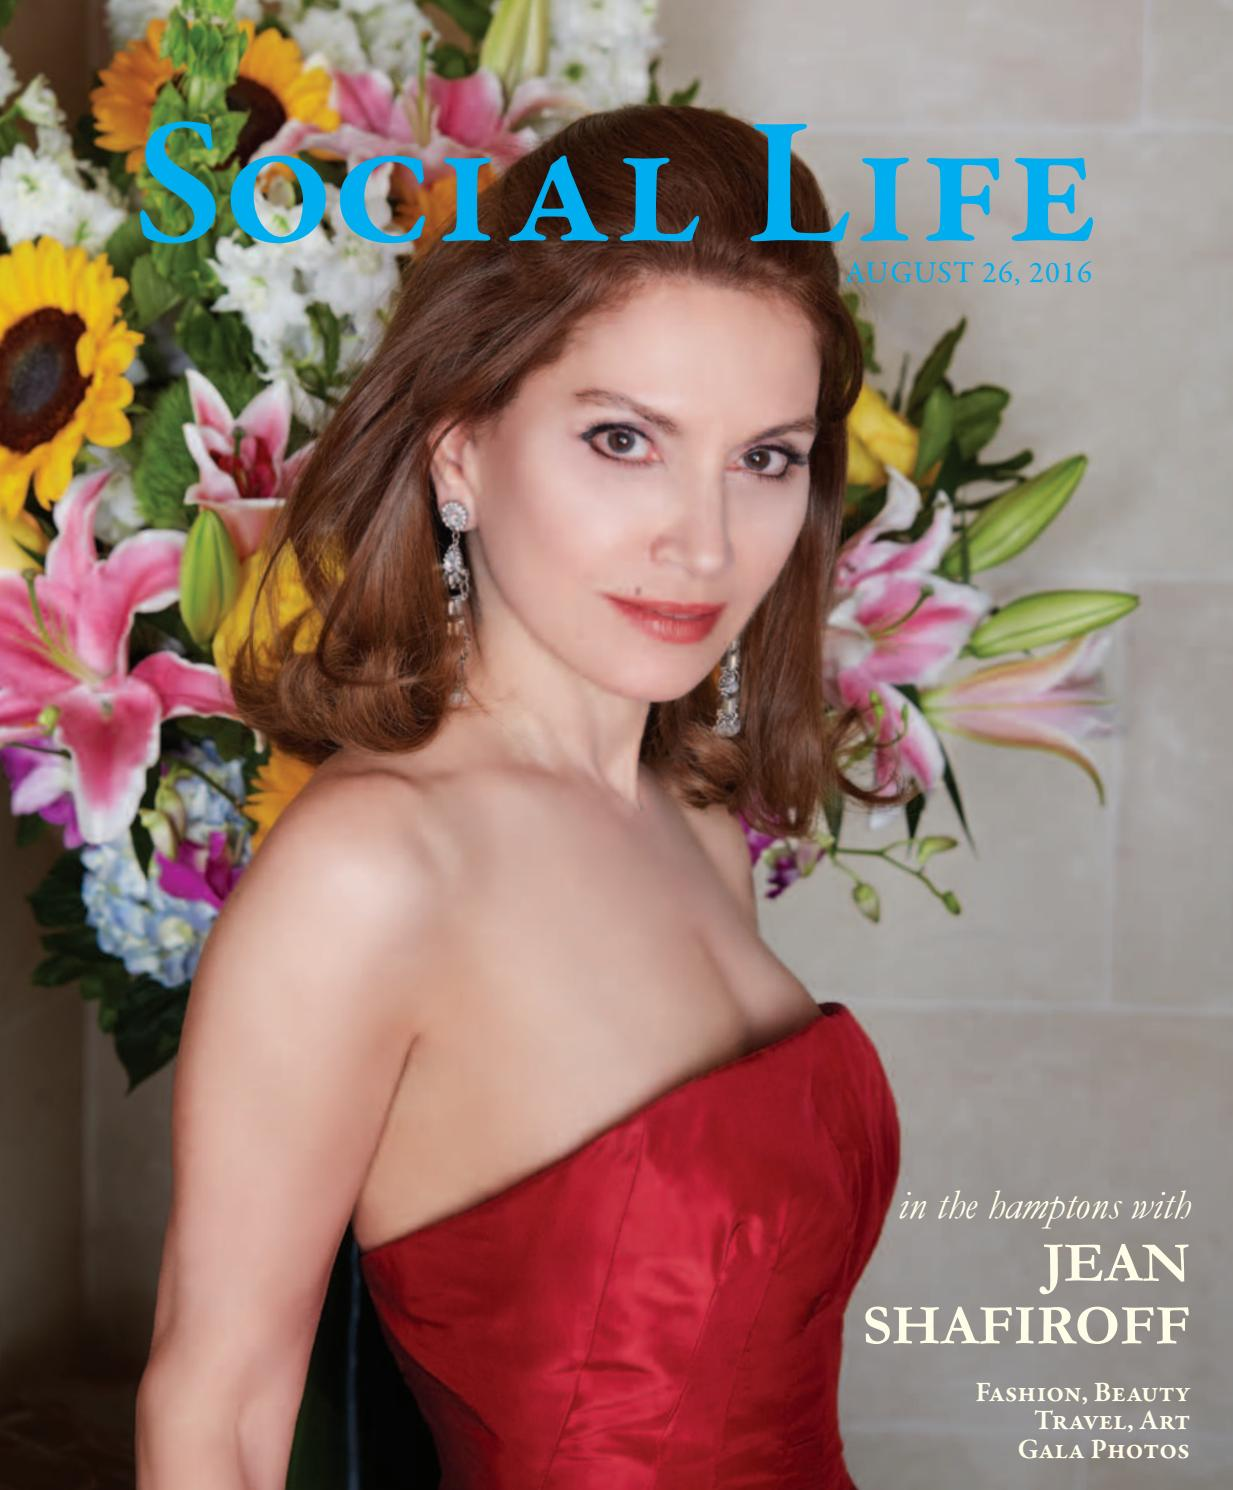 ee5684271749 Social Life - August September 2016 - Jean Shafiroff by Social Life ...